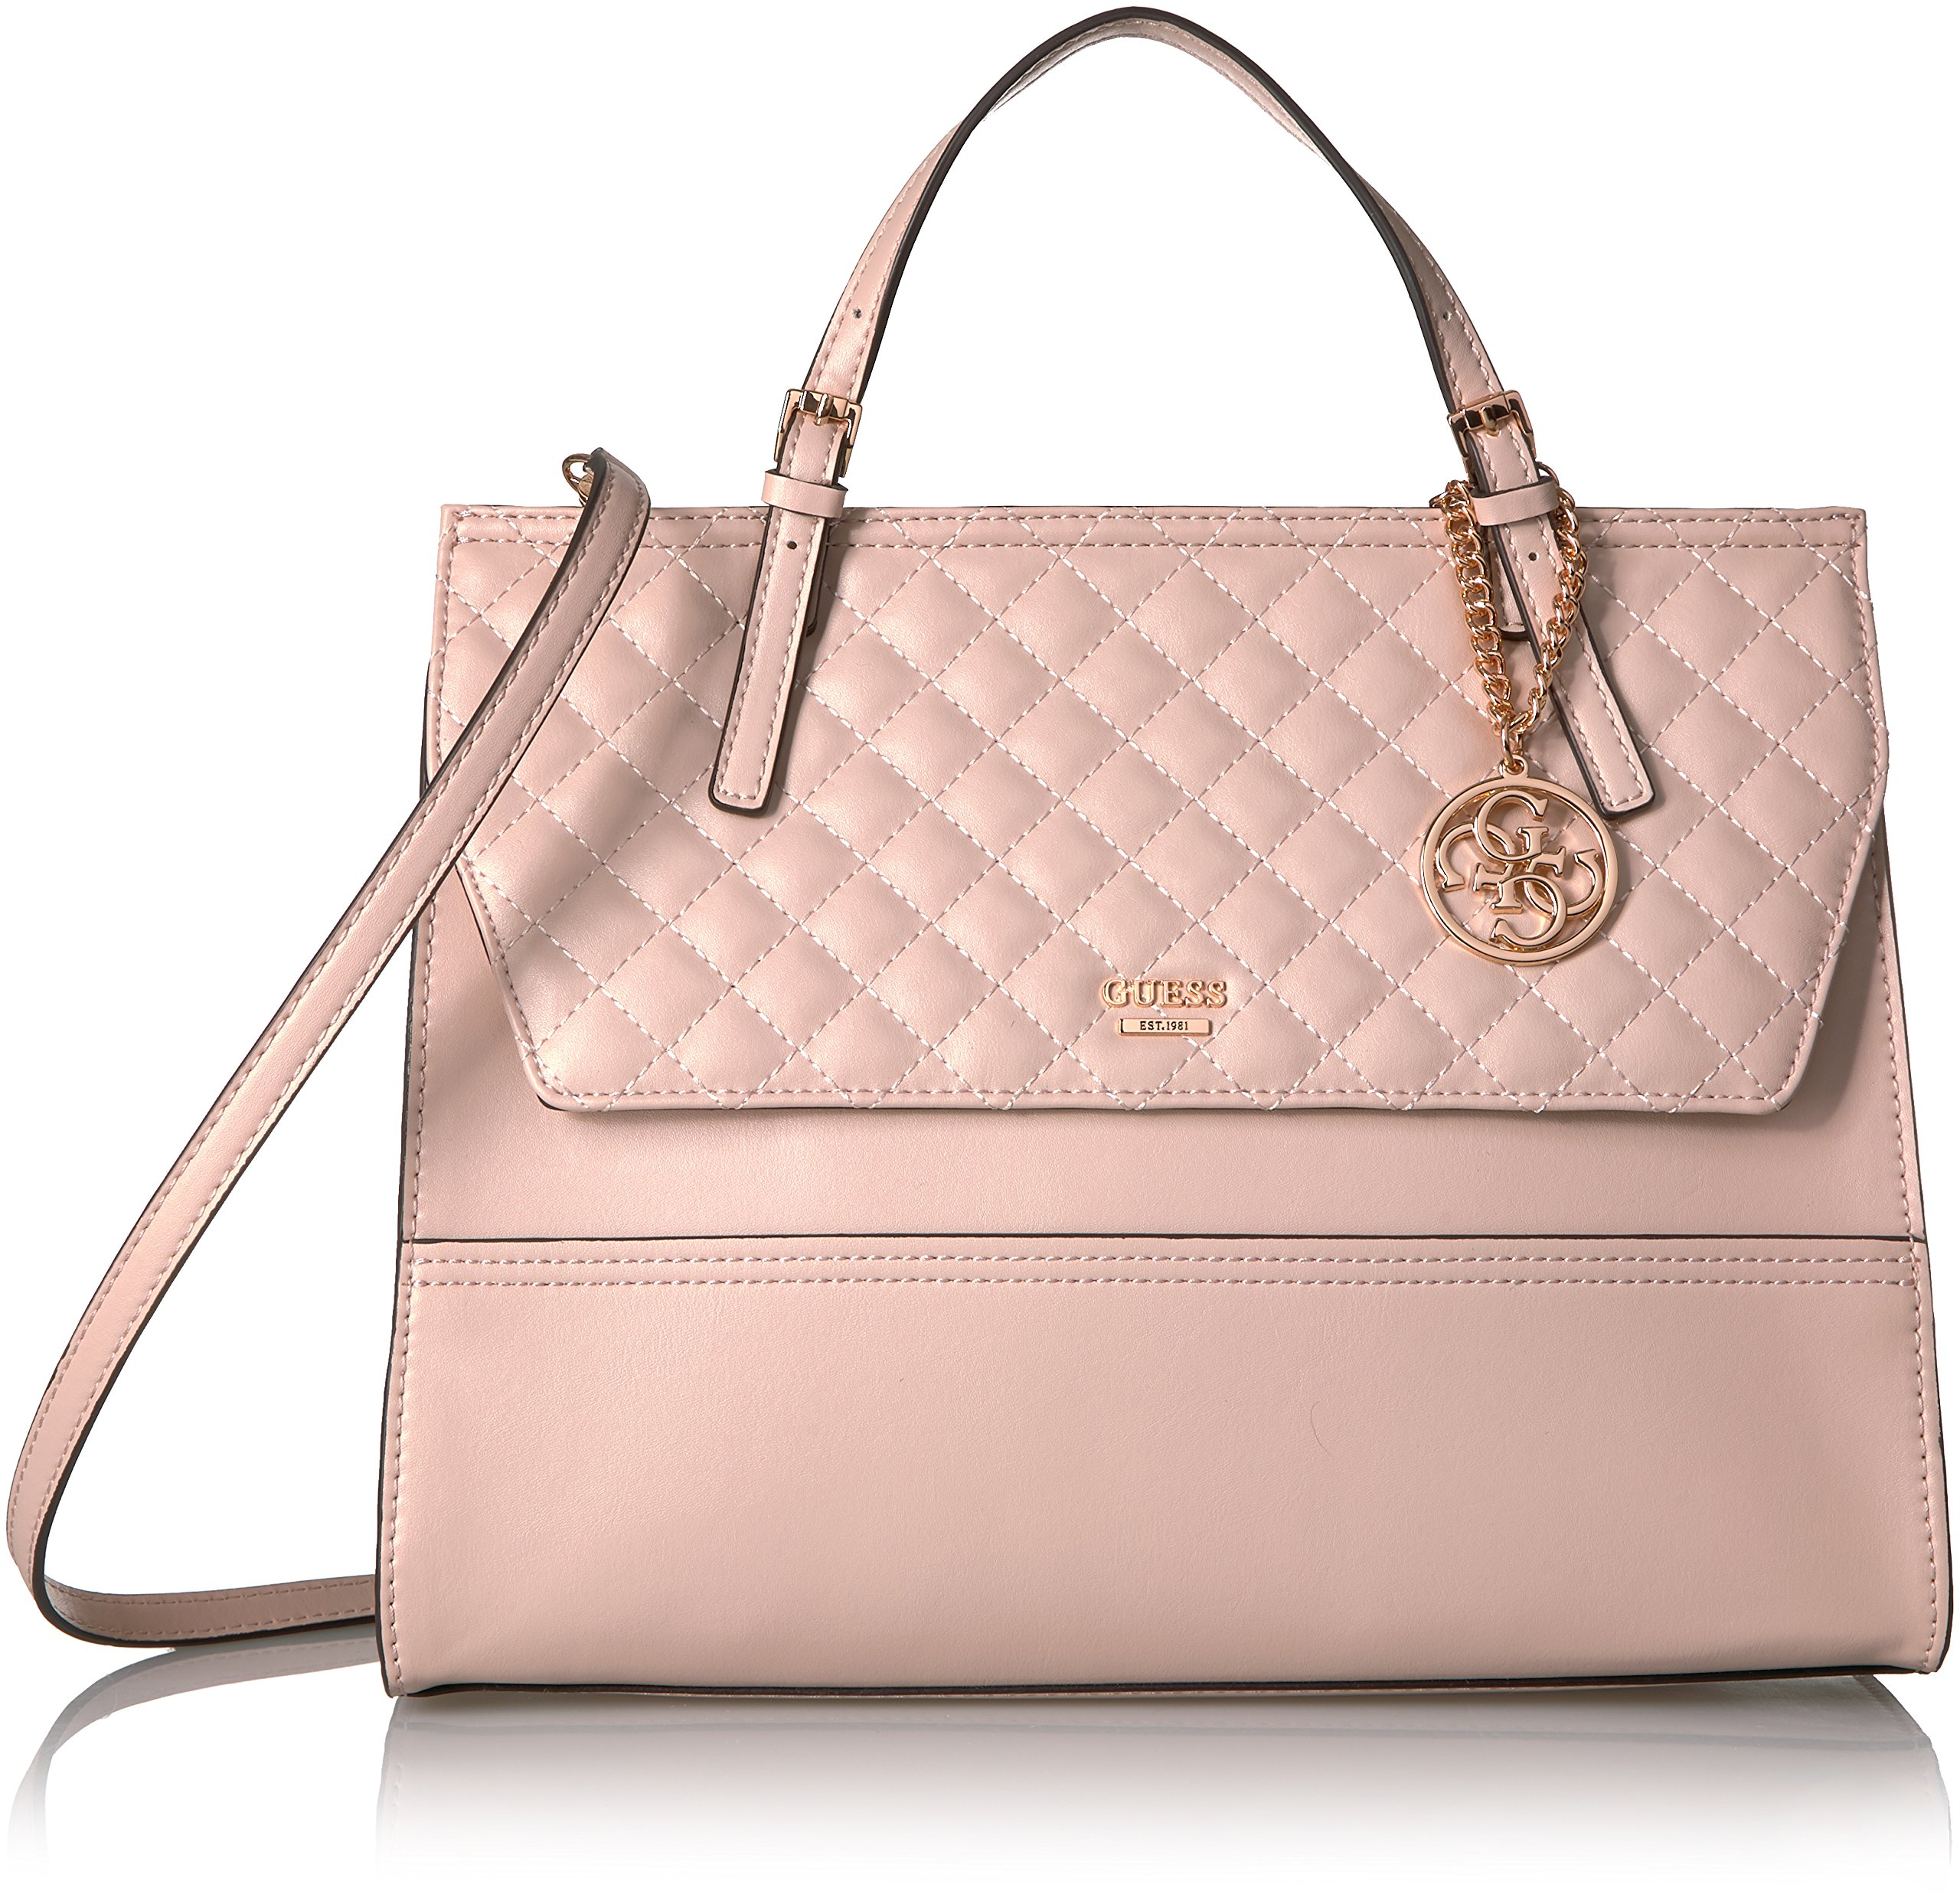 GUESS Huntley Top Handle Flap, Blush